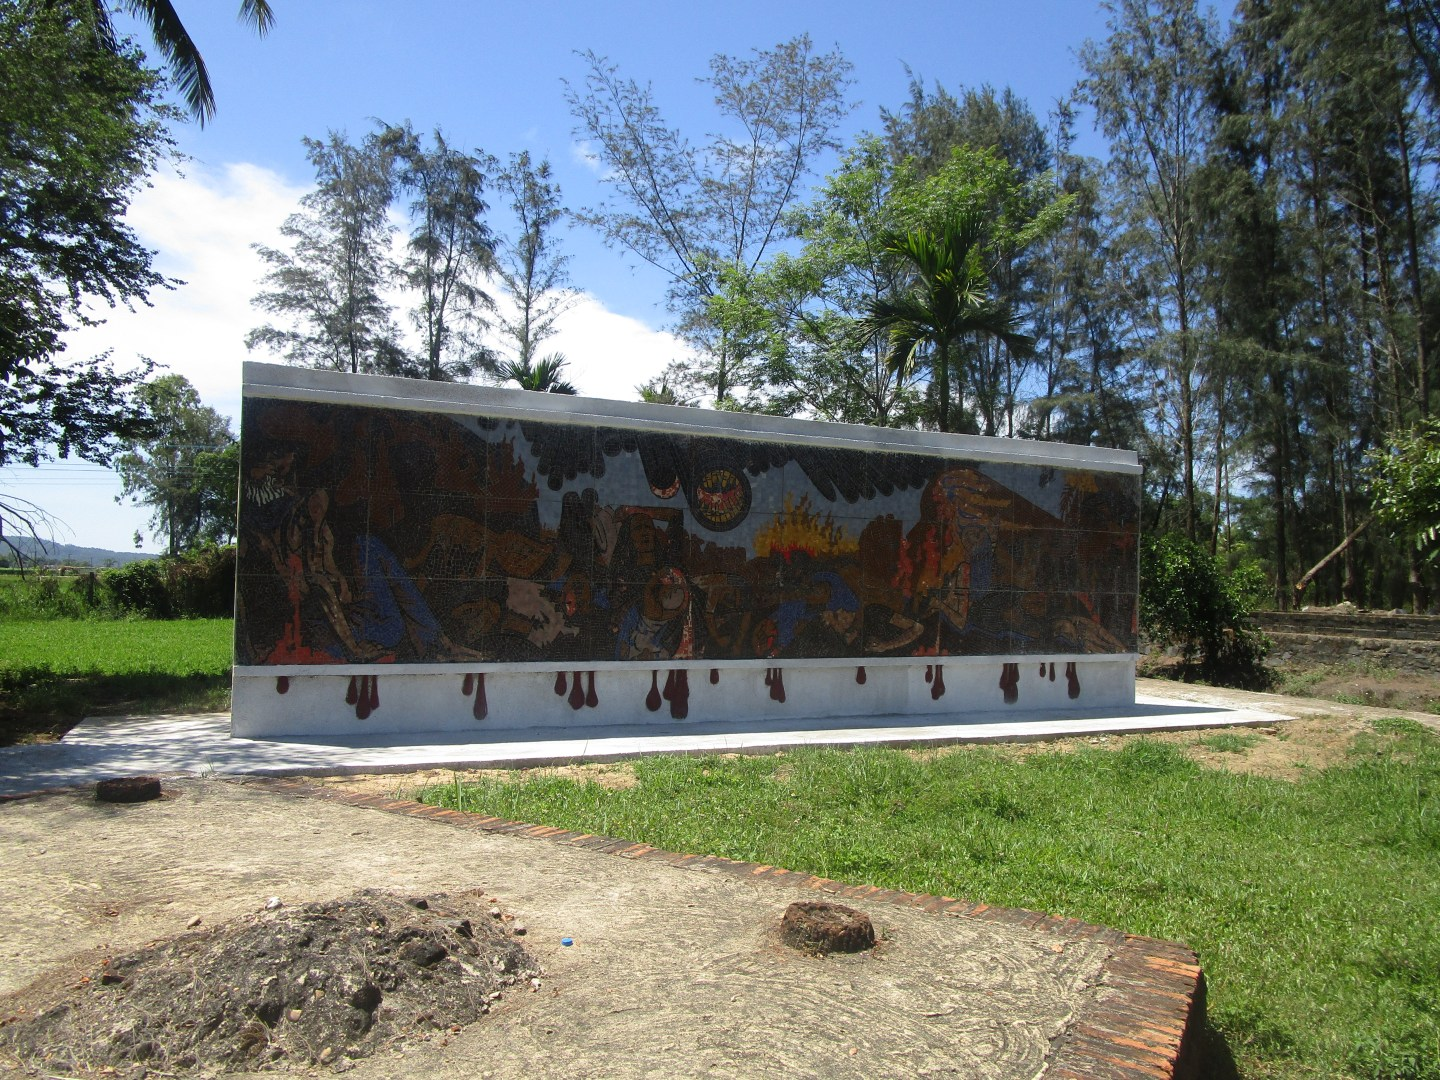 Historical Places to visit in Vietnam: My Lai Memorial. Where the village once stood is artwork to memorialise those who died here.